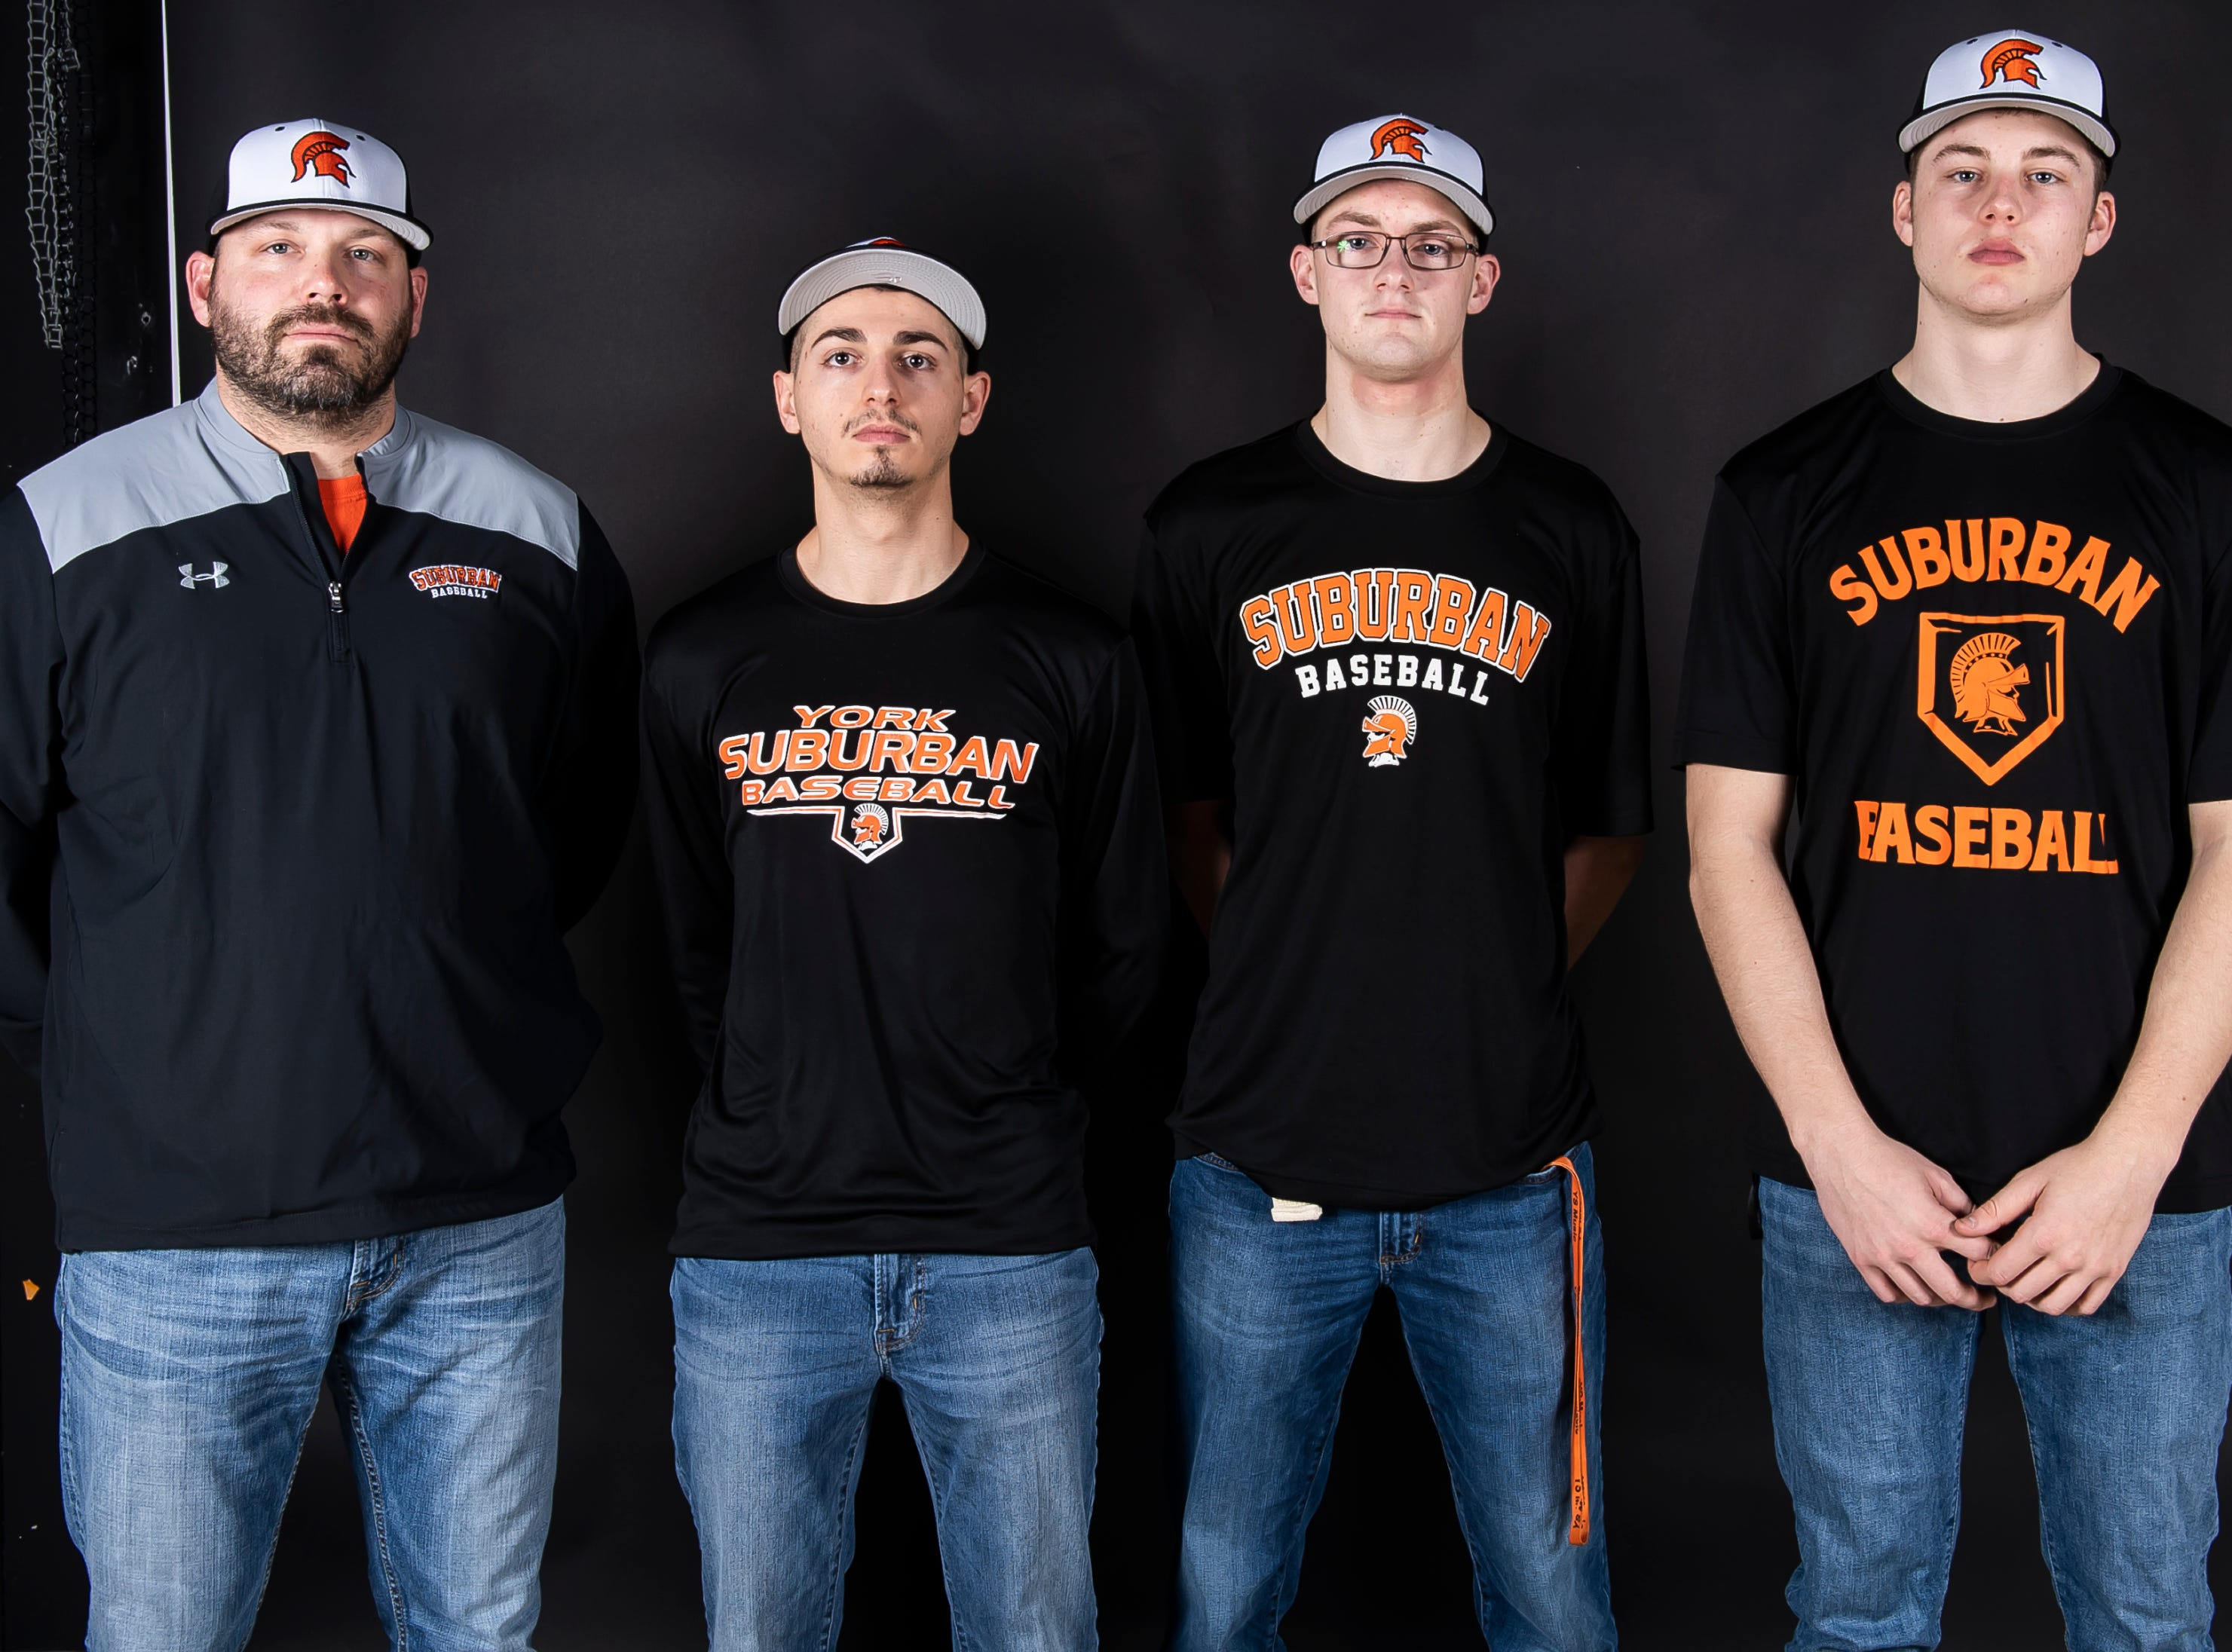 (From left) York Suburban baseball's coach Casey Market, Adam Petersen, Ryan Myers and Max Reinecker pose in the GameTimePA photo booth during spring sports media day in York Sunday, March 10, 2019.